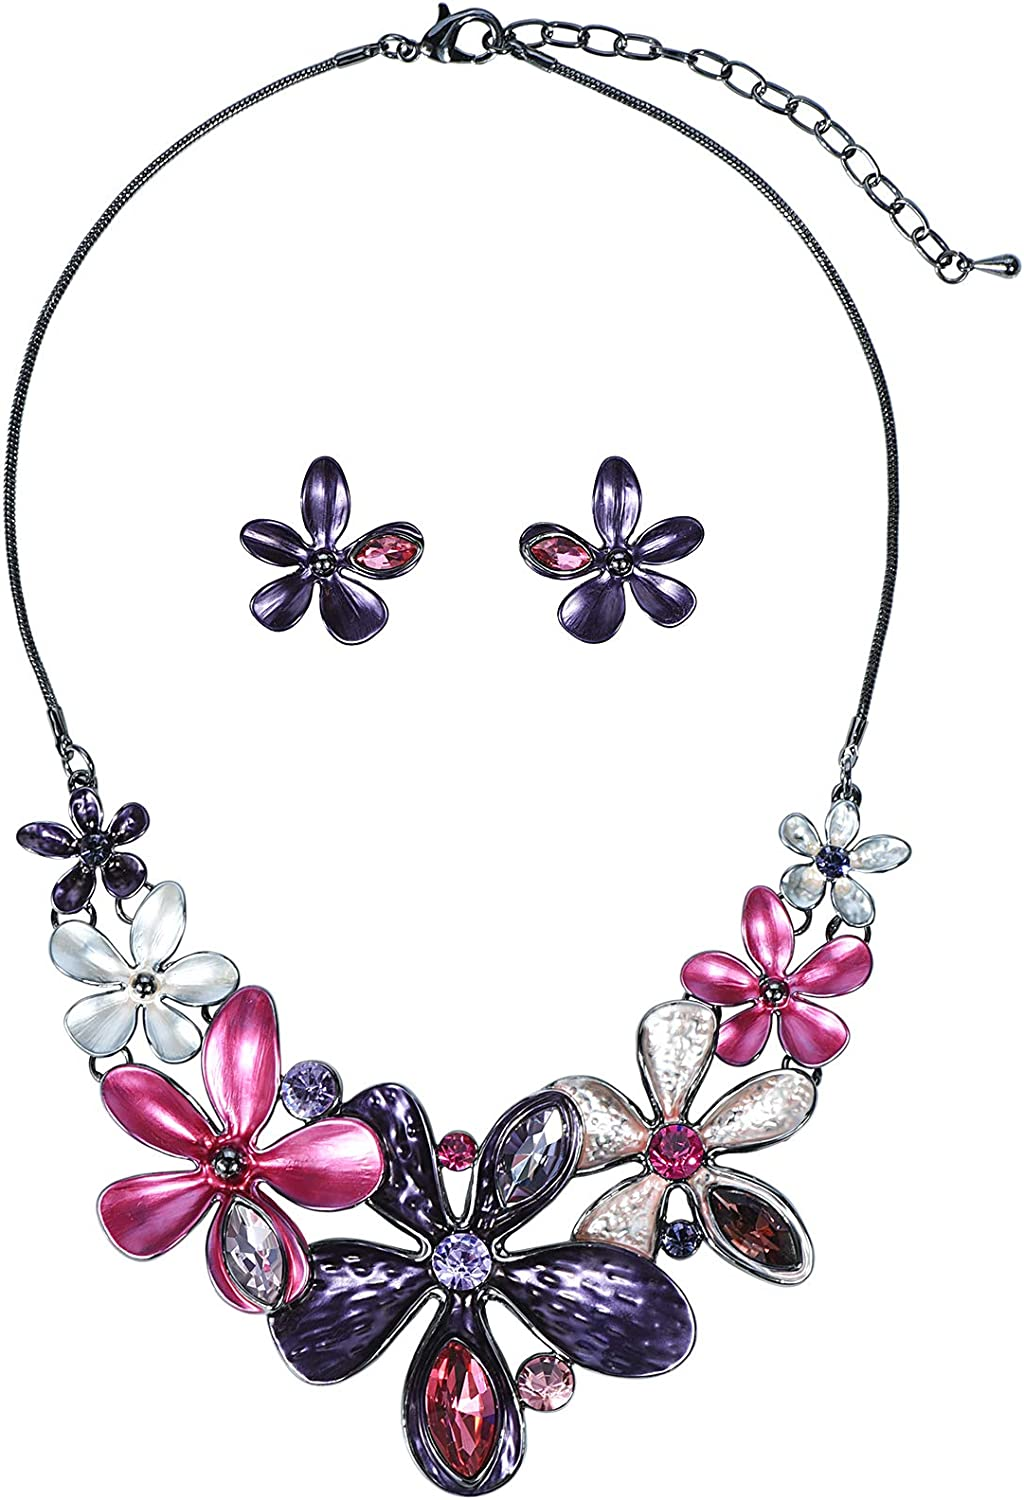 Vintage Colorful Five Petal Flower Enamel Blossom Flower Chunky Collar Bib Statement Necklace and Earrings Set for Women Wedding Bridal Prom